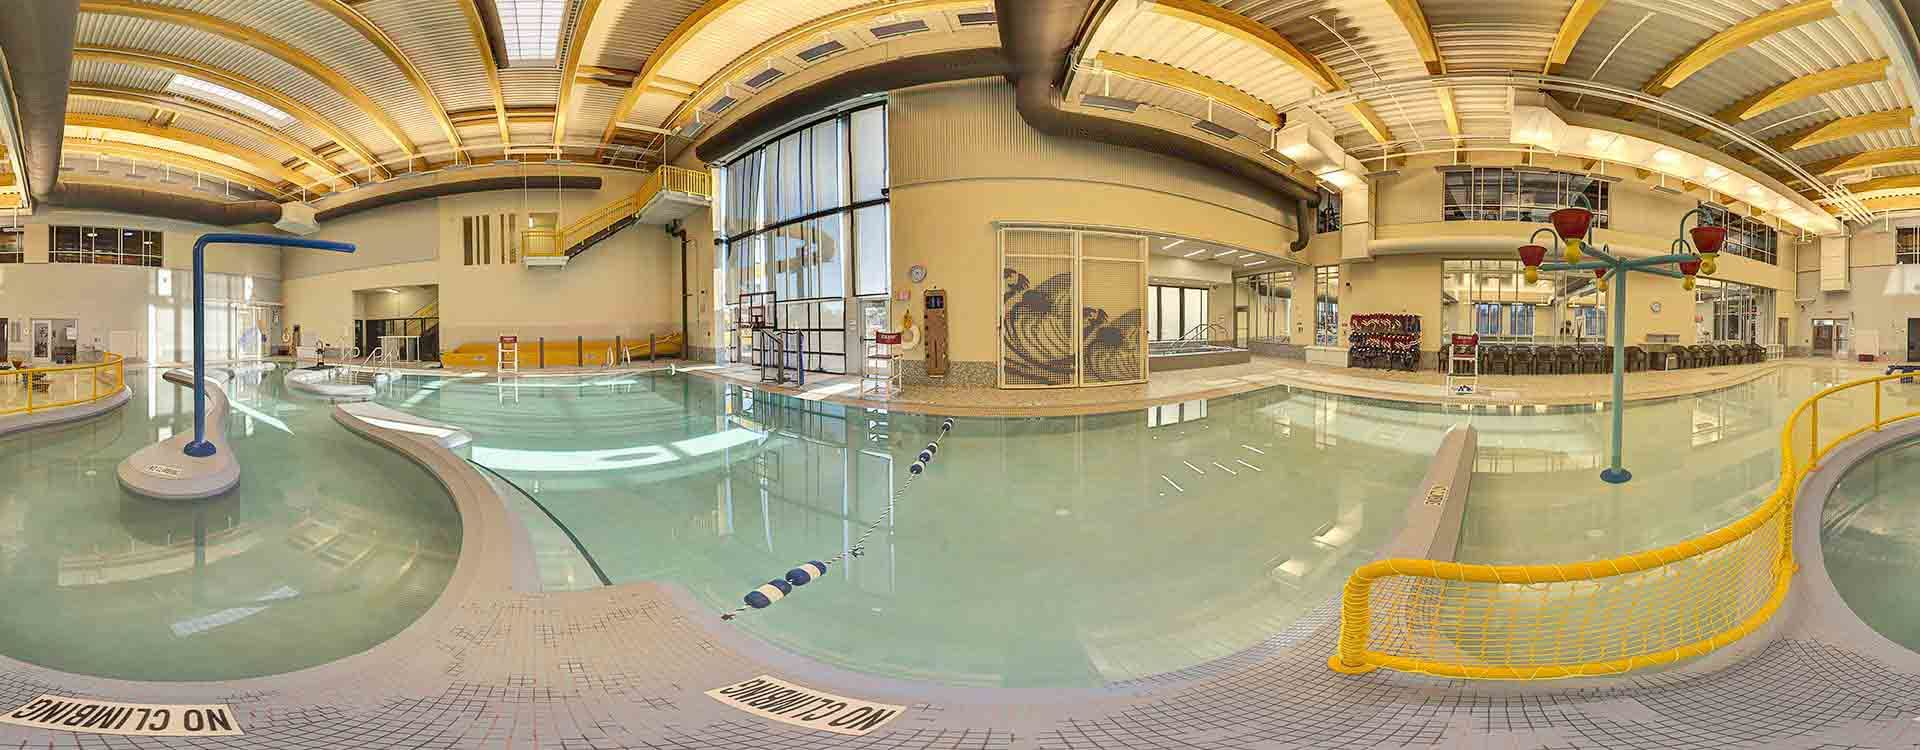 Google Virtual Tour Panorama Swimming Pool